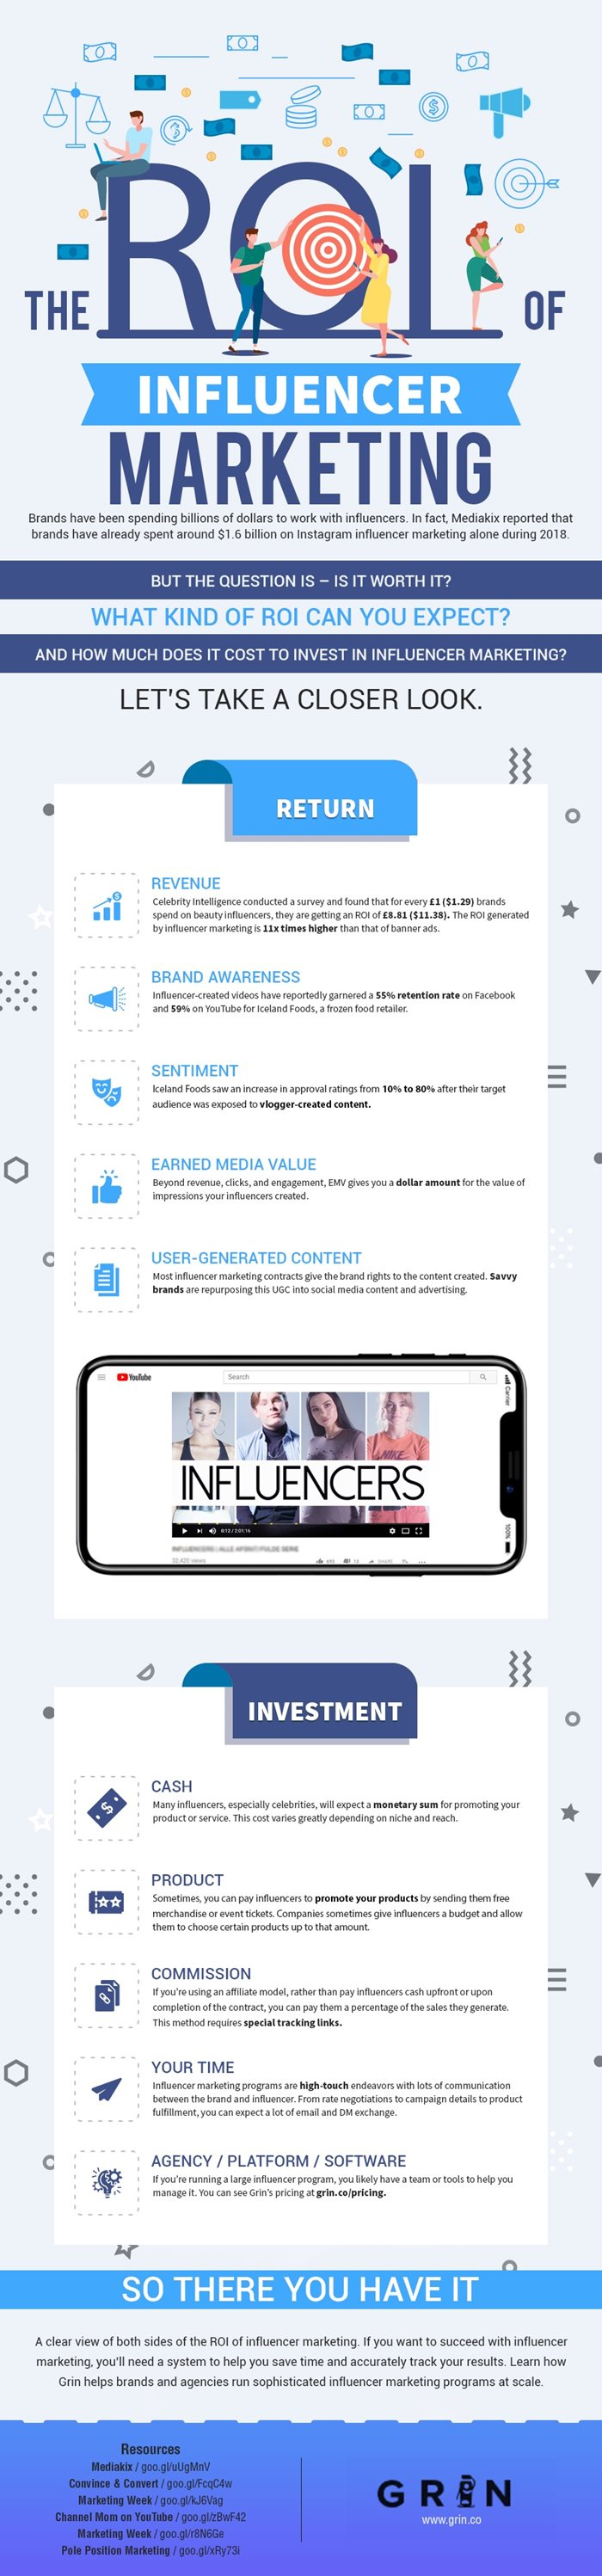 The-ROI-of-Influencer-Marketing-Infographic.jpg